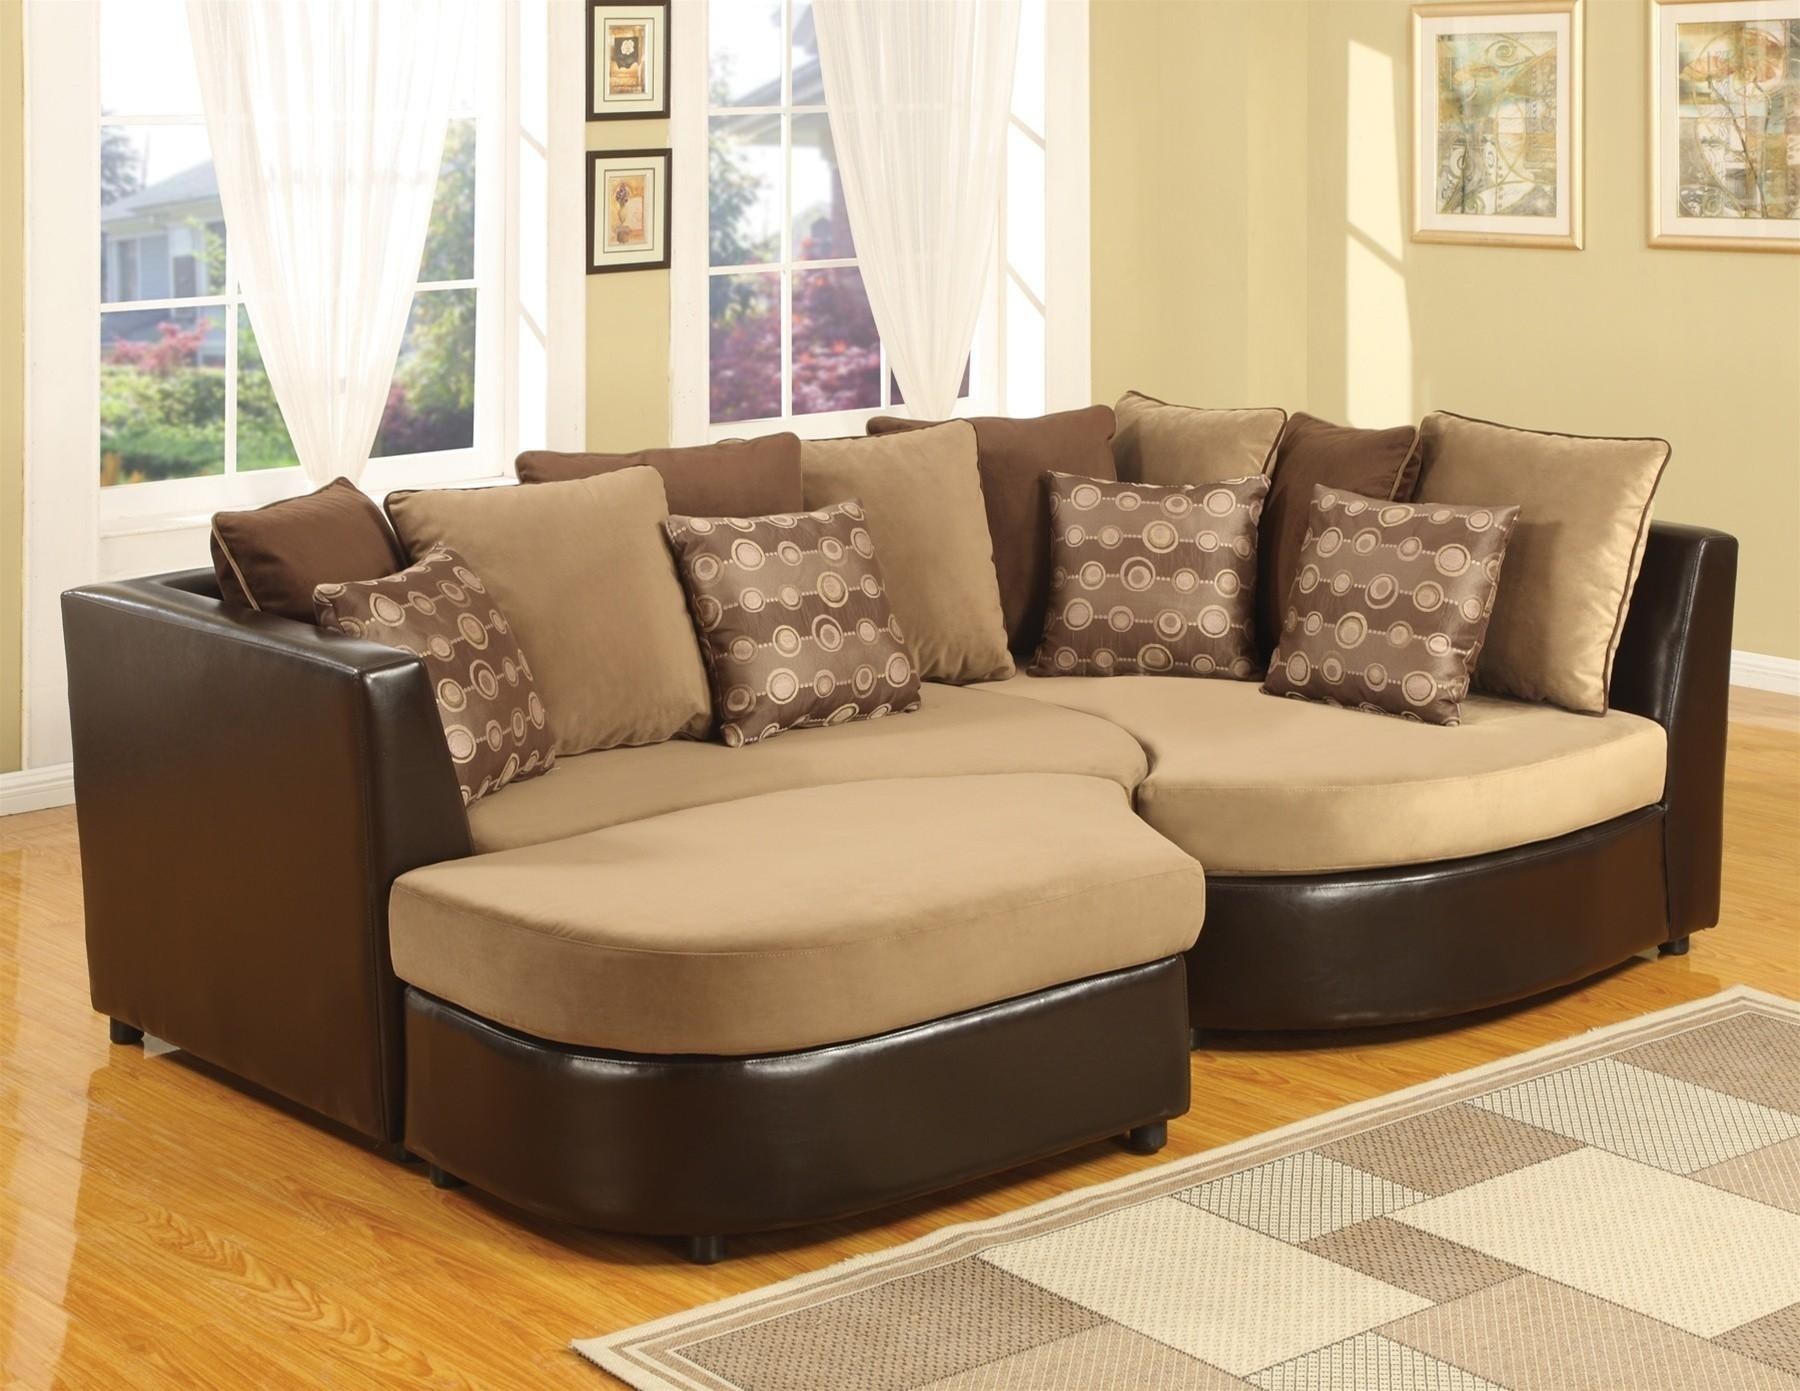 Sofas Center : Oversized Double Sofa Chair And For Staging Regarding Large Sofa Chairs (Image 17 of 20)